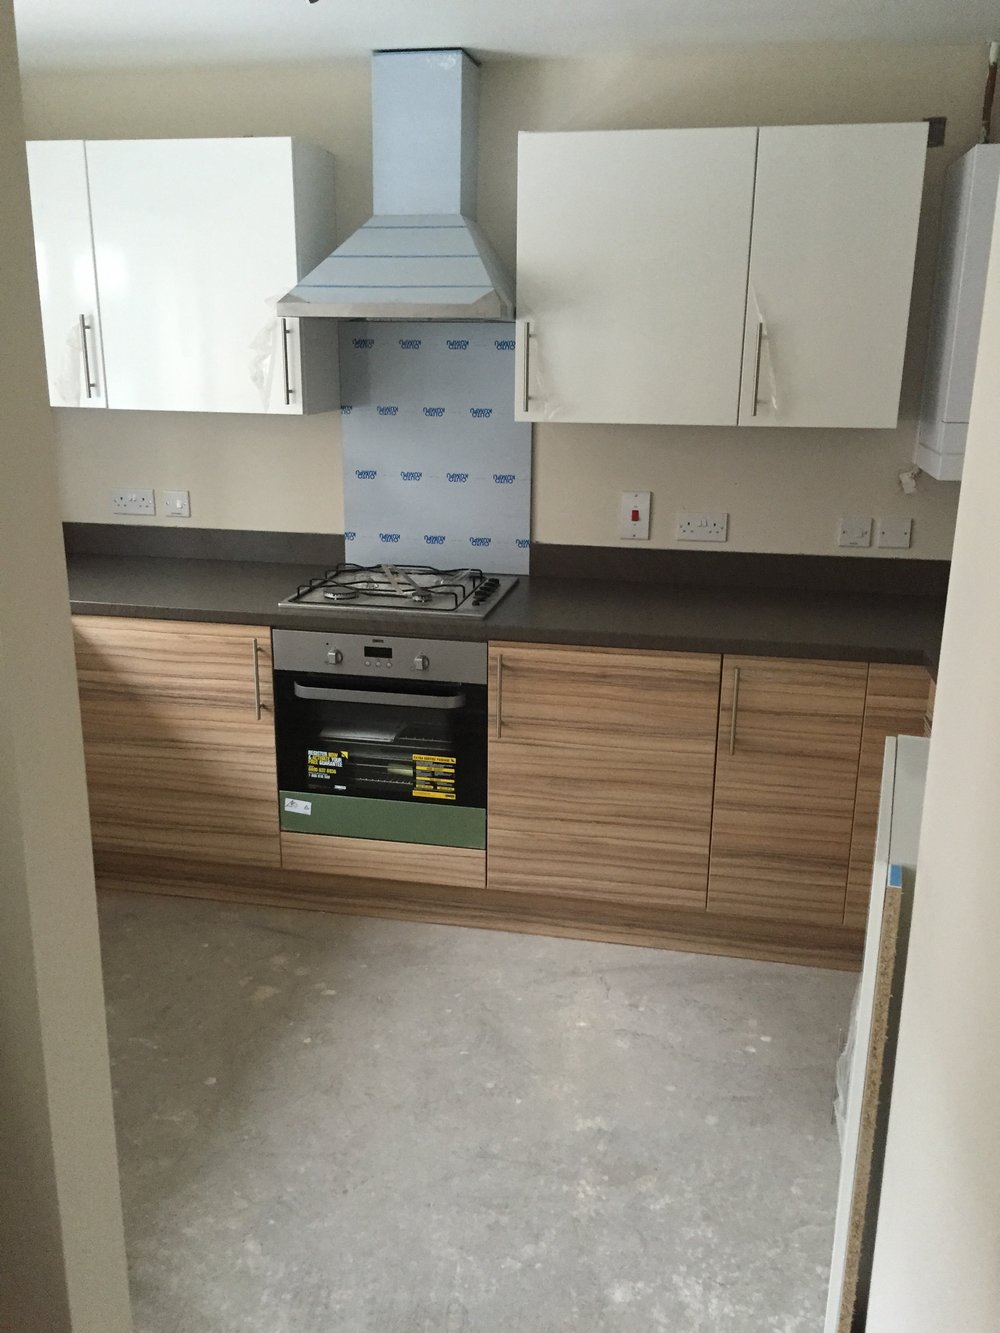 Social housing kitchen upgrade